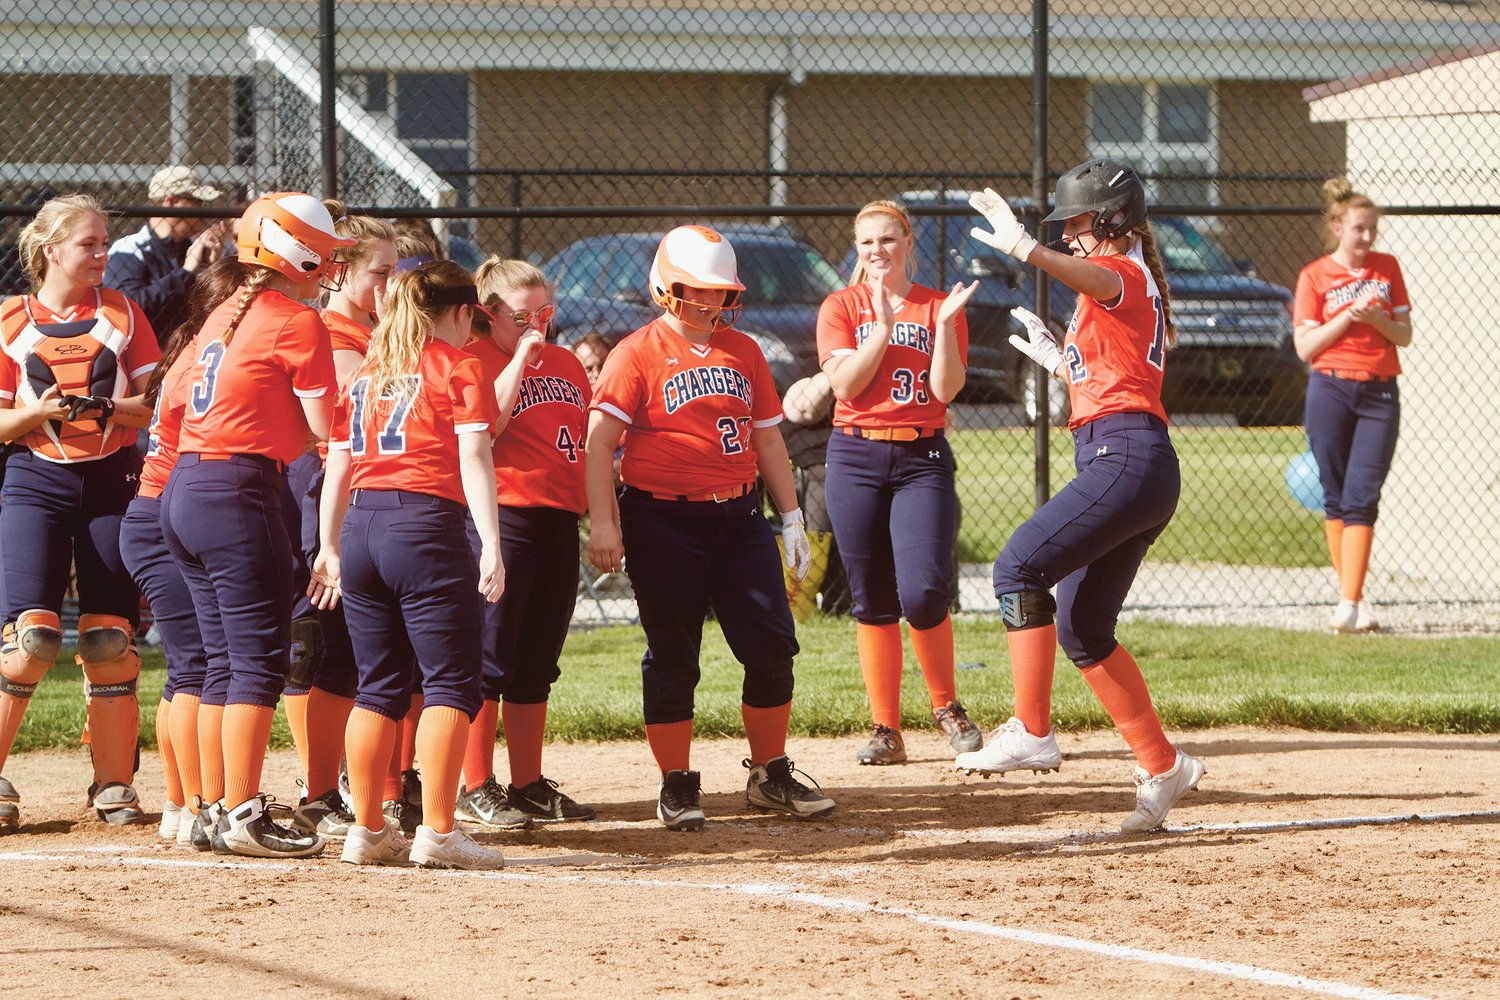 The Chargers celebrate after a Makinze Rominger's home run.